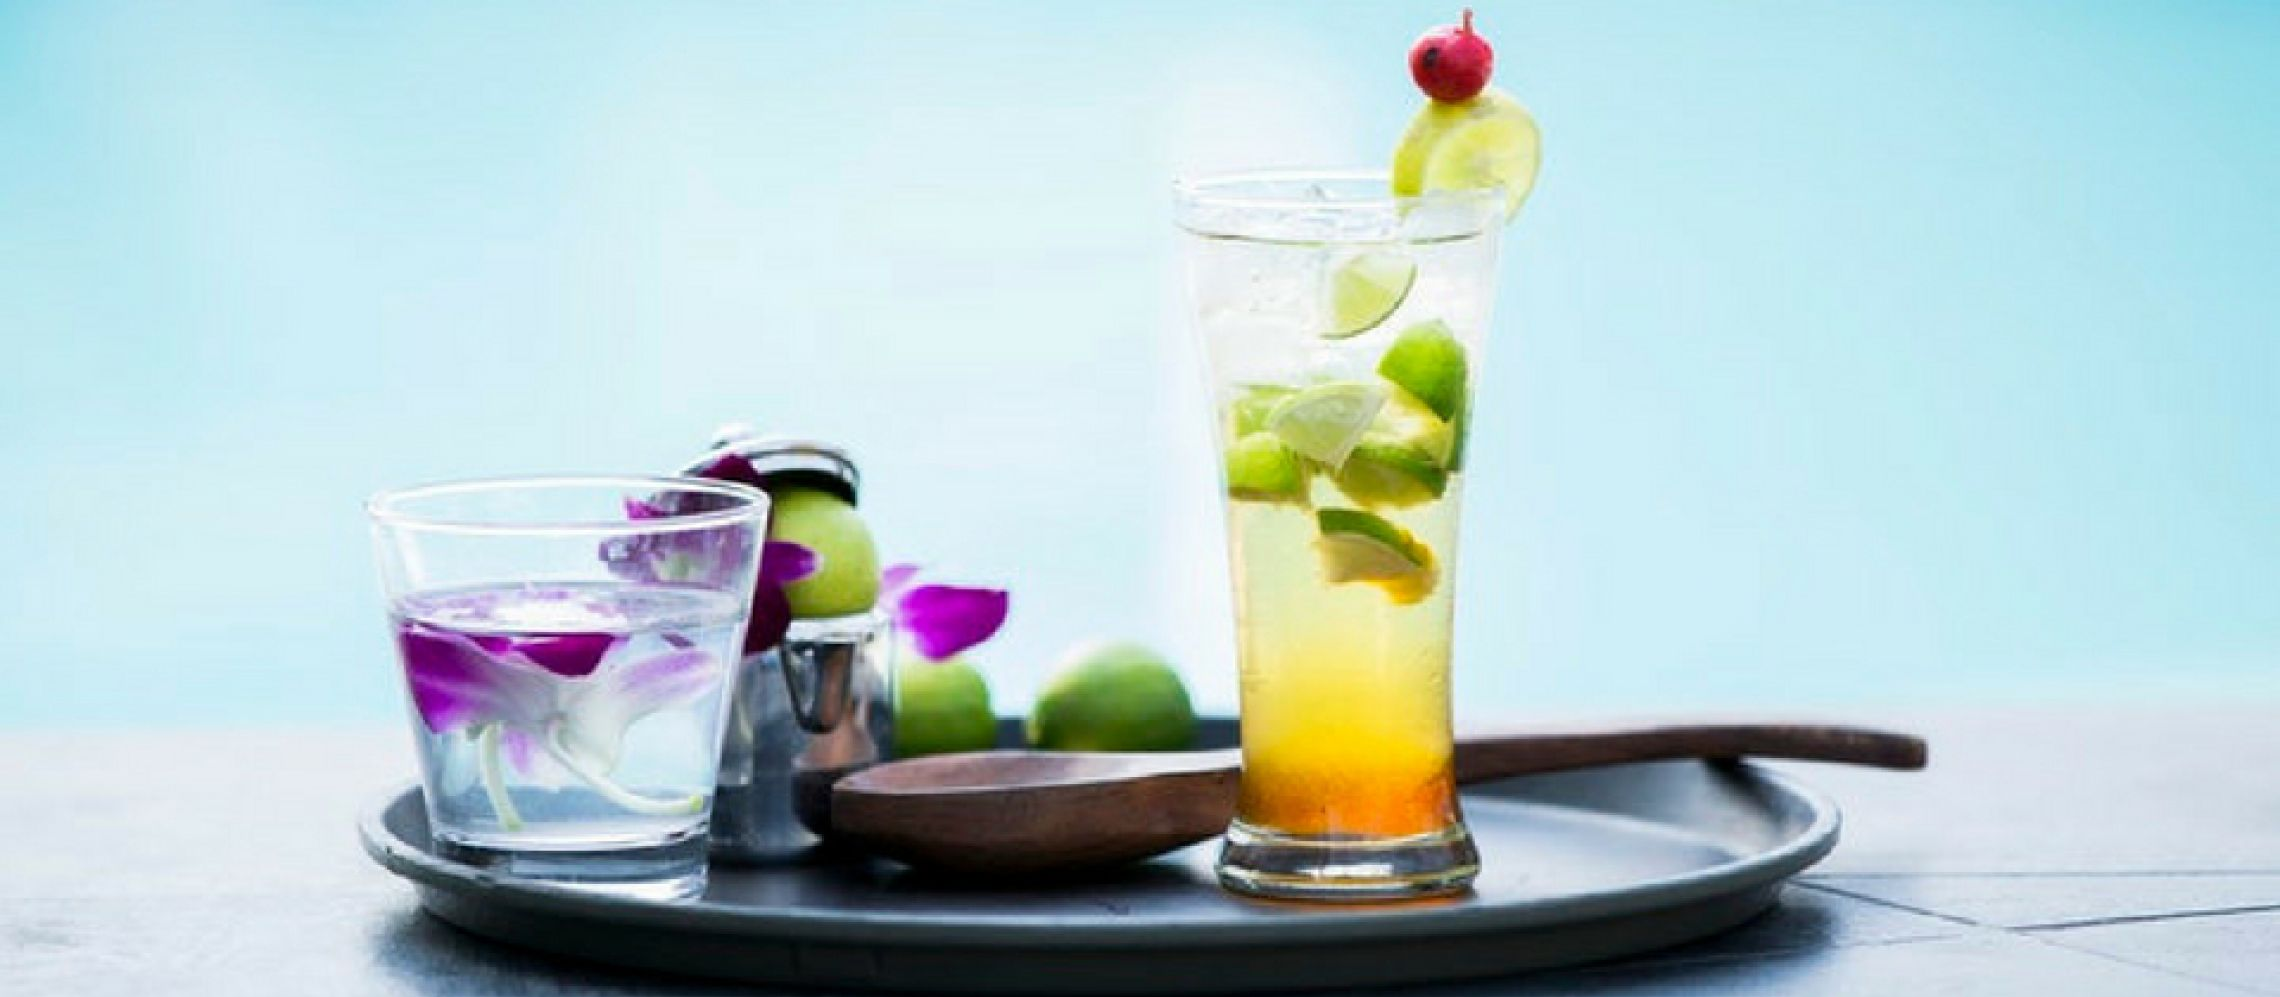 Photo for: Cocktail Trends in UK